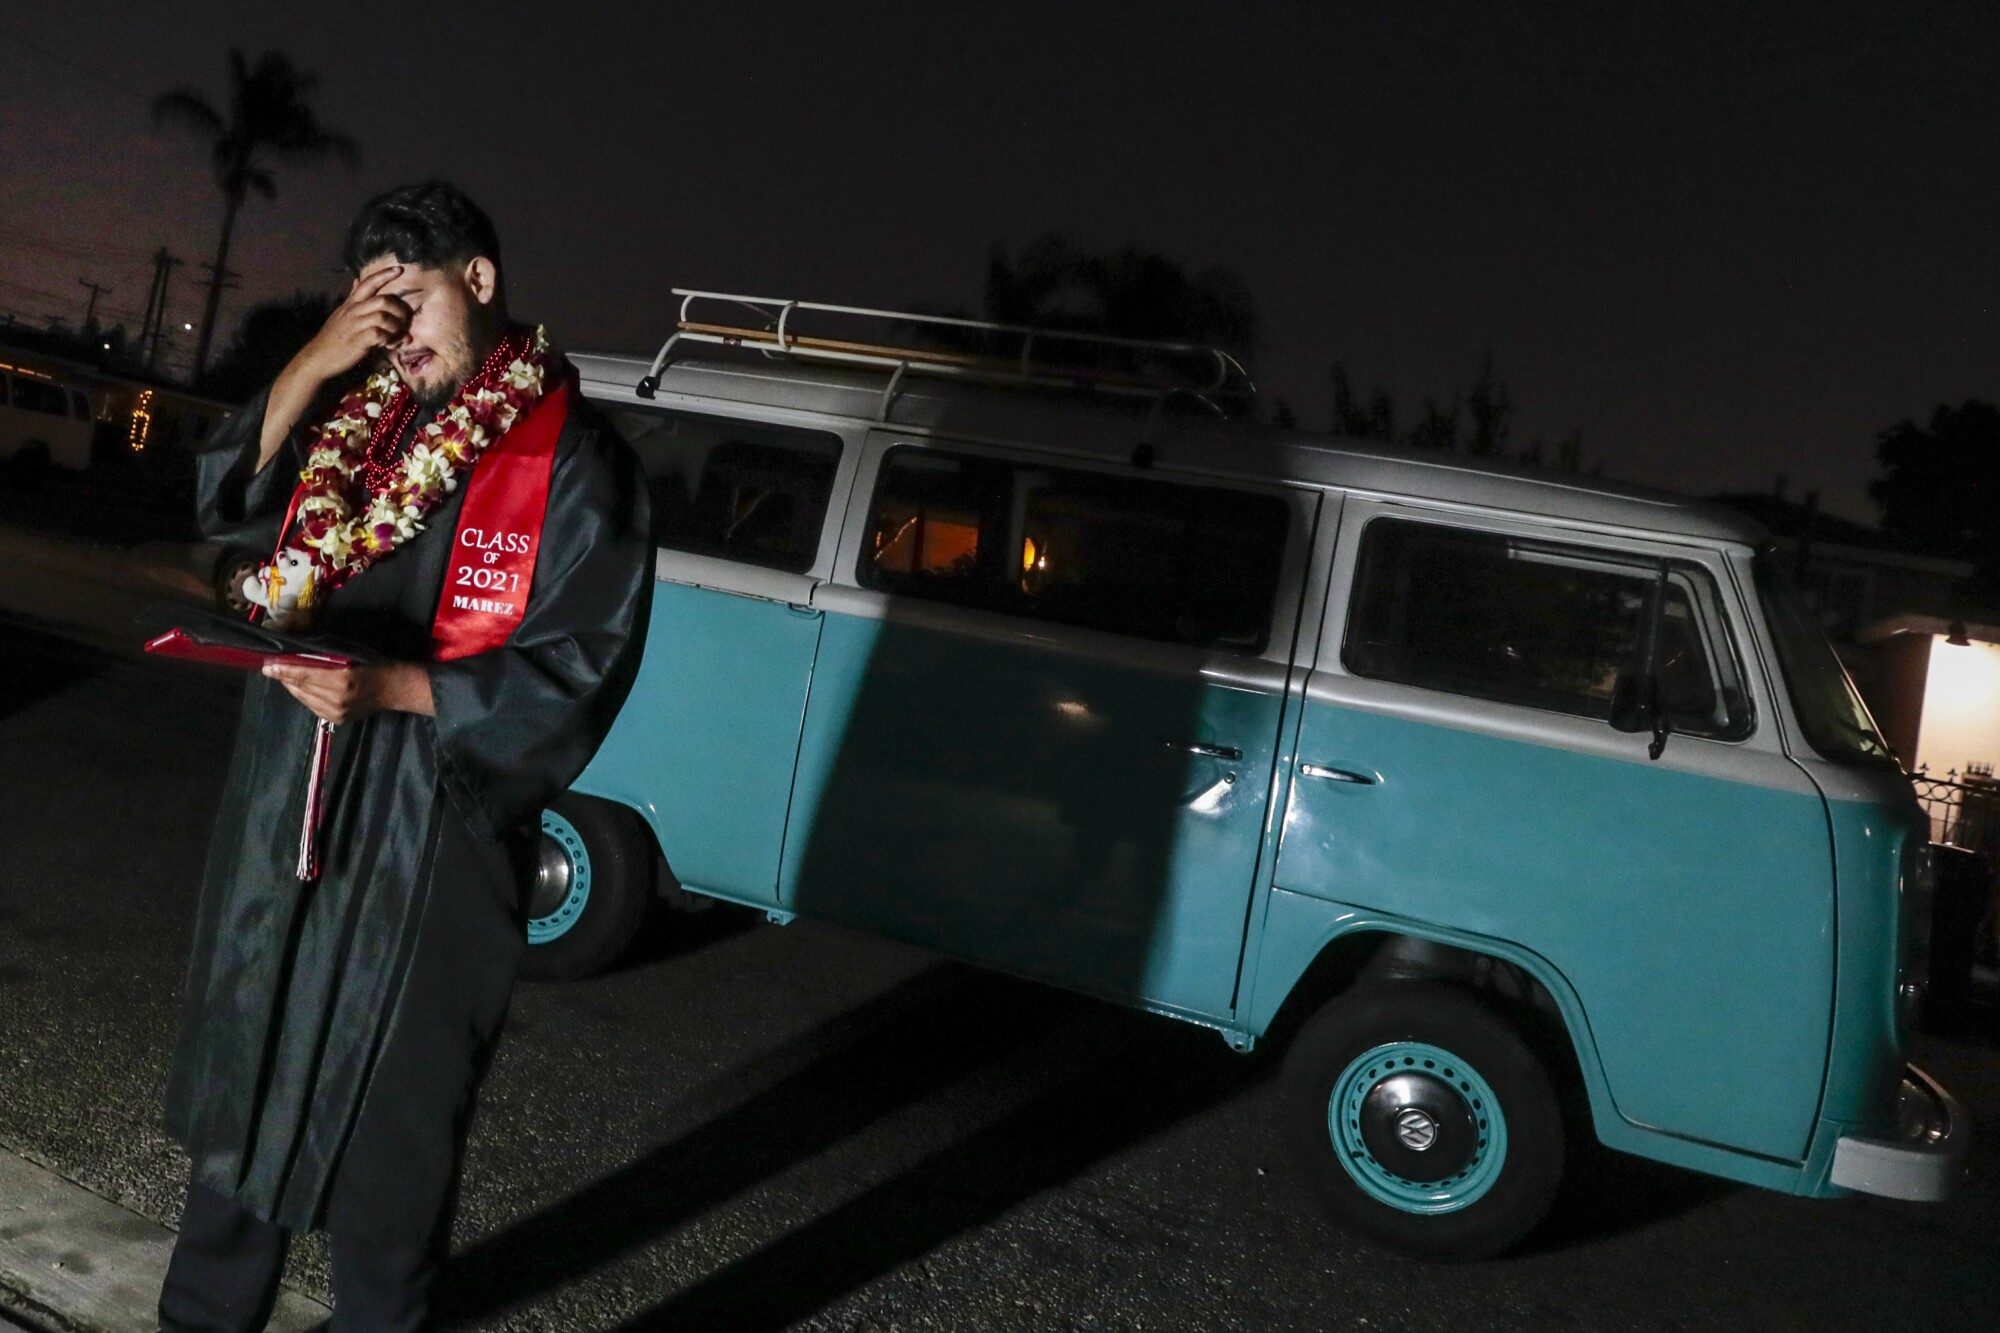 Cesar Martinez composes himself while having photos taken in front of a vintage VW van he helped his brother restore.